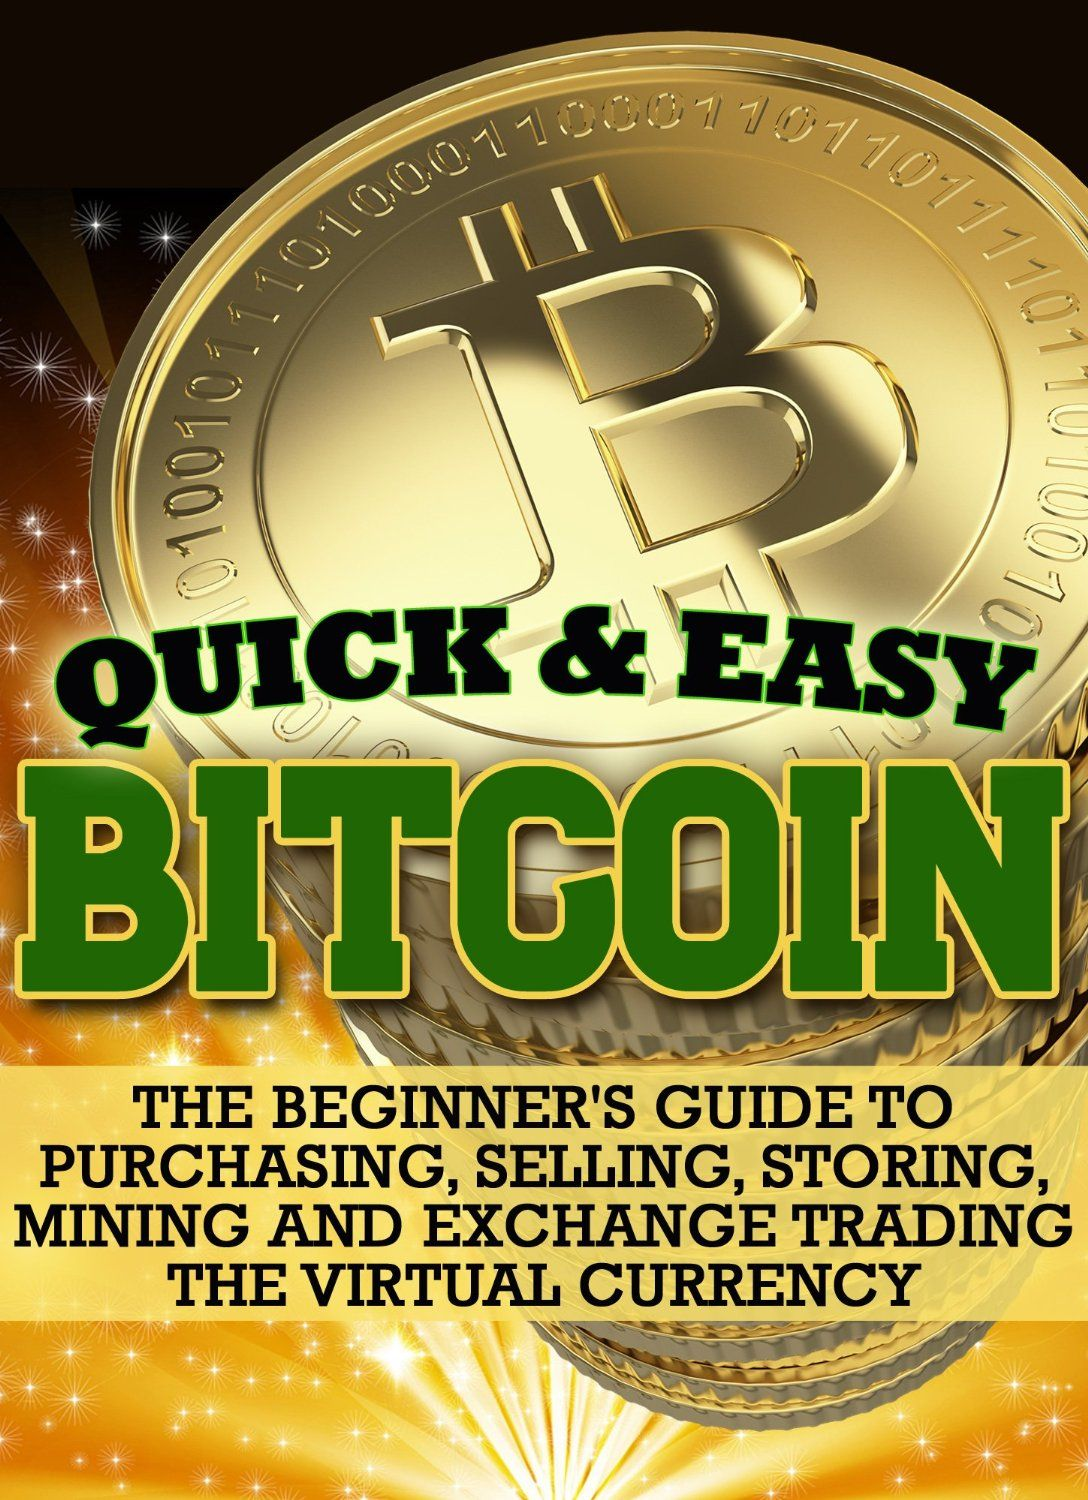 Bitcoin: The Beginner's Guide to Purchasing, Selling, Storing, Mining and Exchange Trading the Virtual Currency  by Dogwood Apps ($3.24)